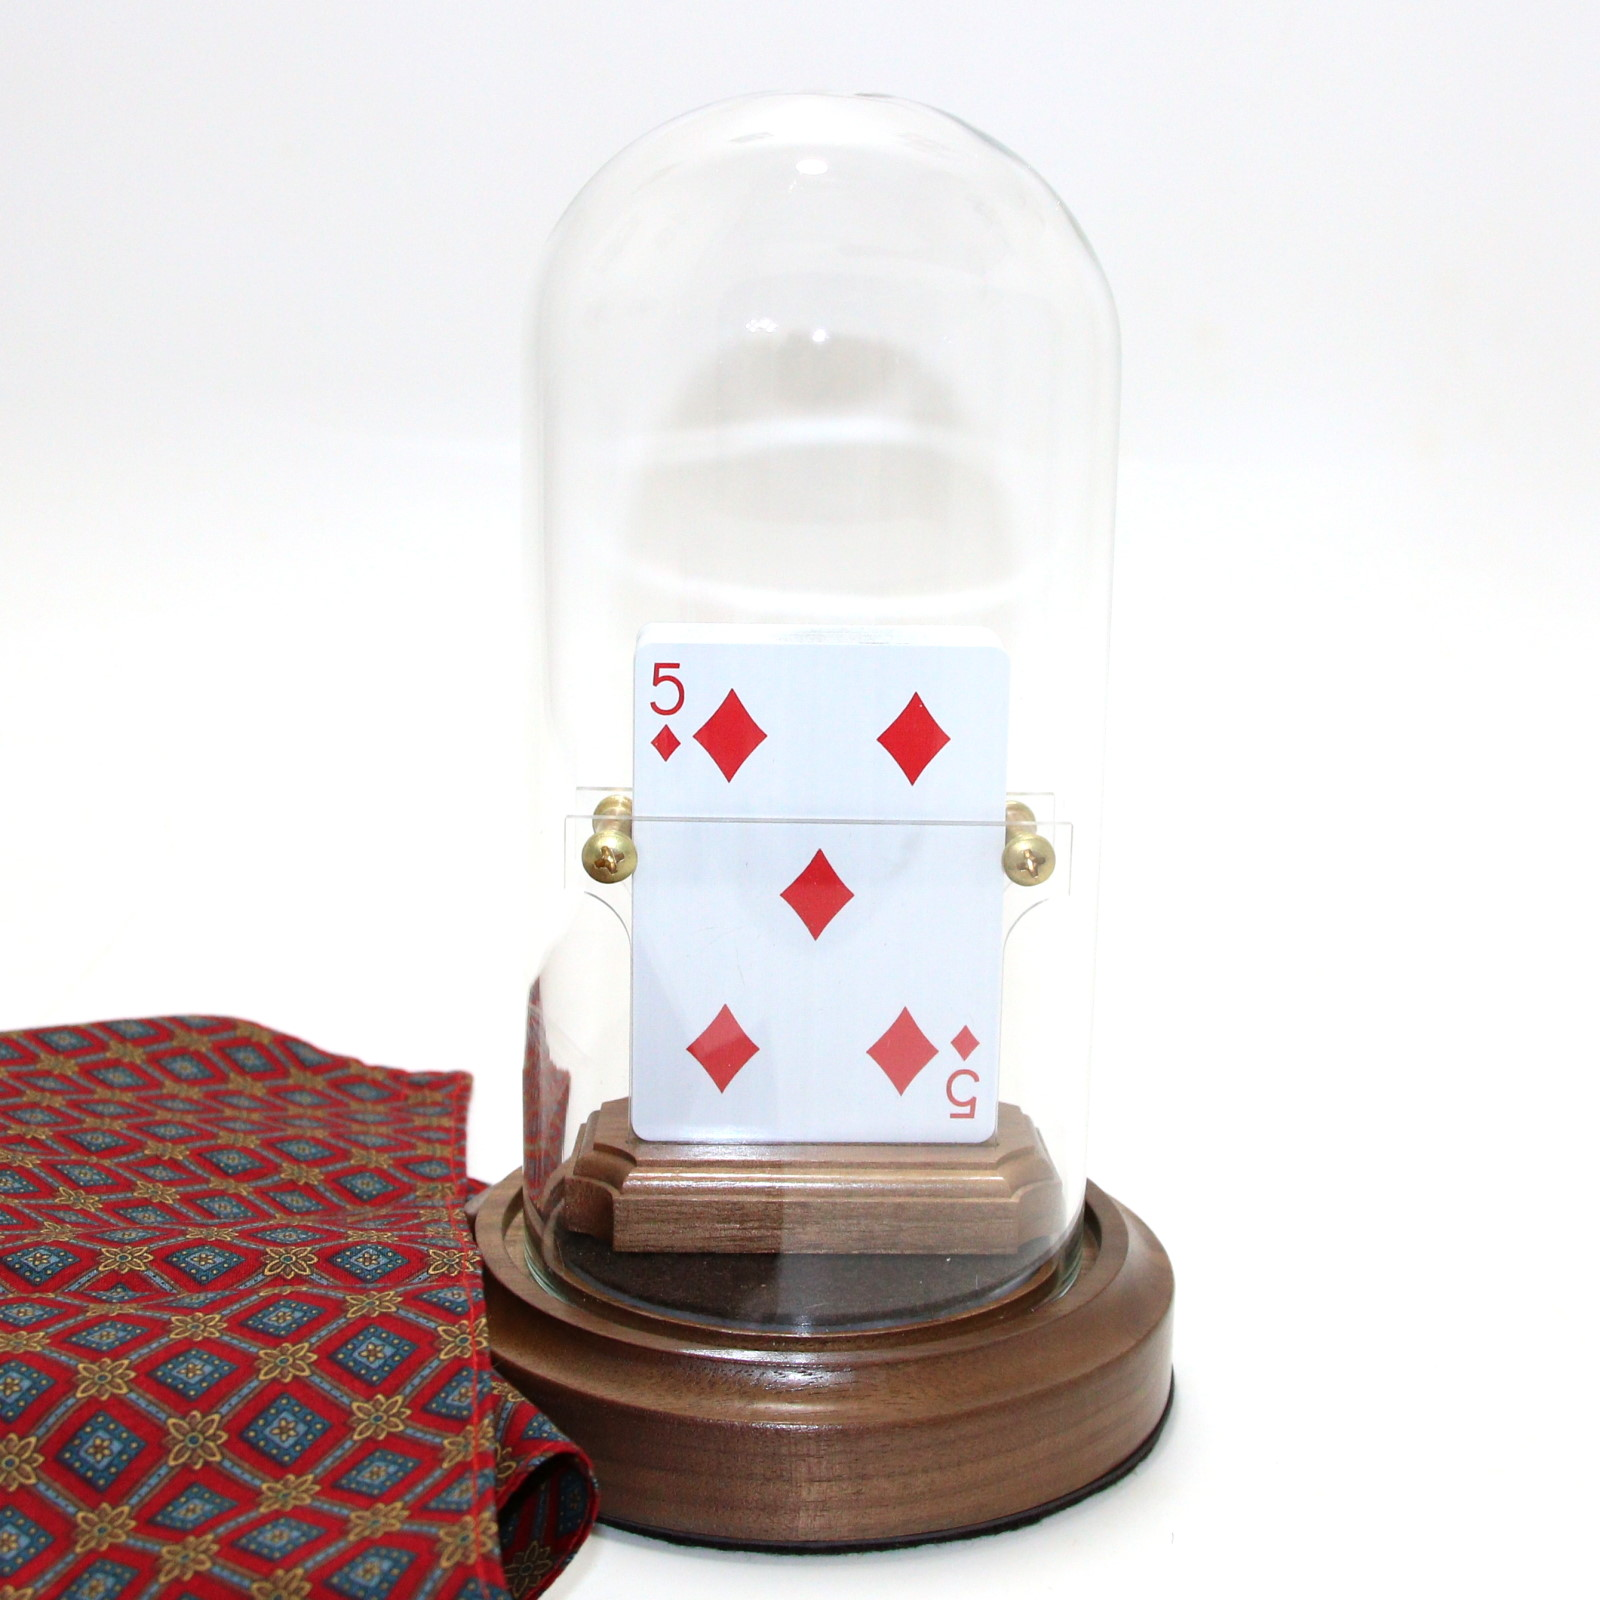 Horizontal Card Rise Deluxe (Remote) by Collectors Workshop